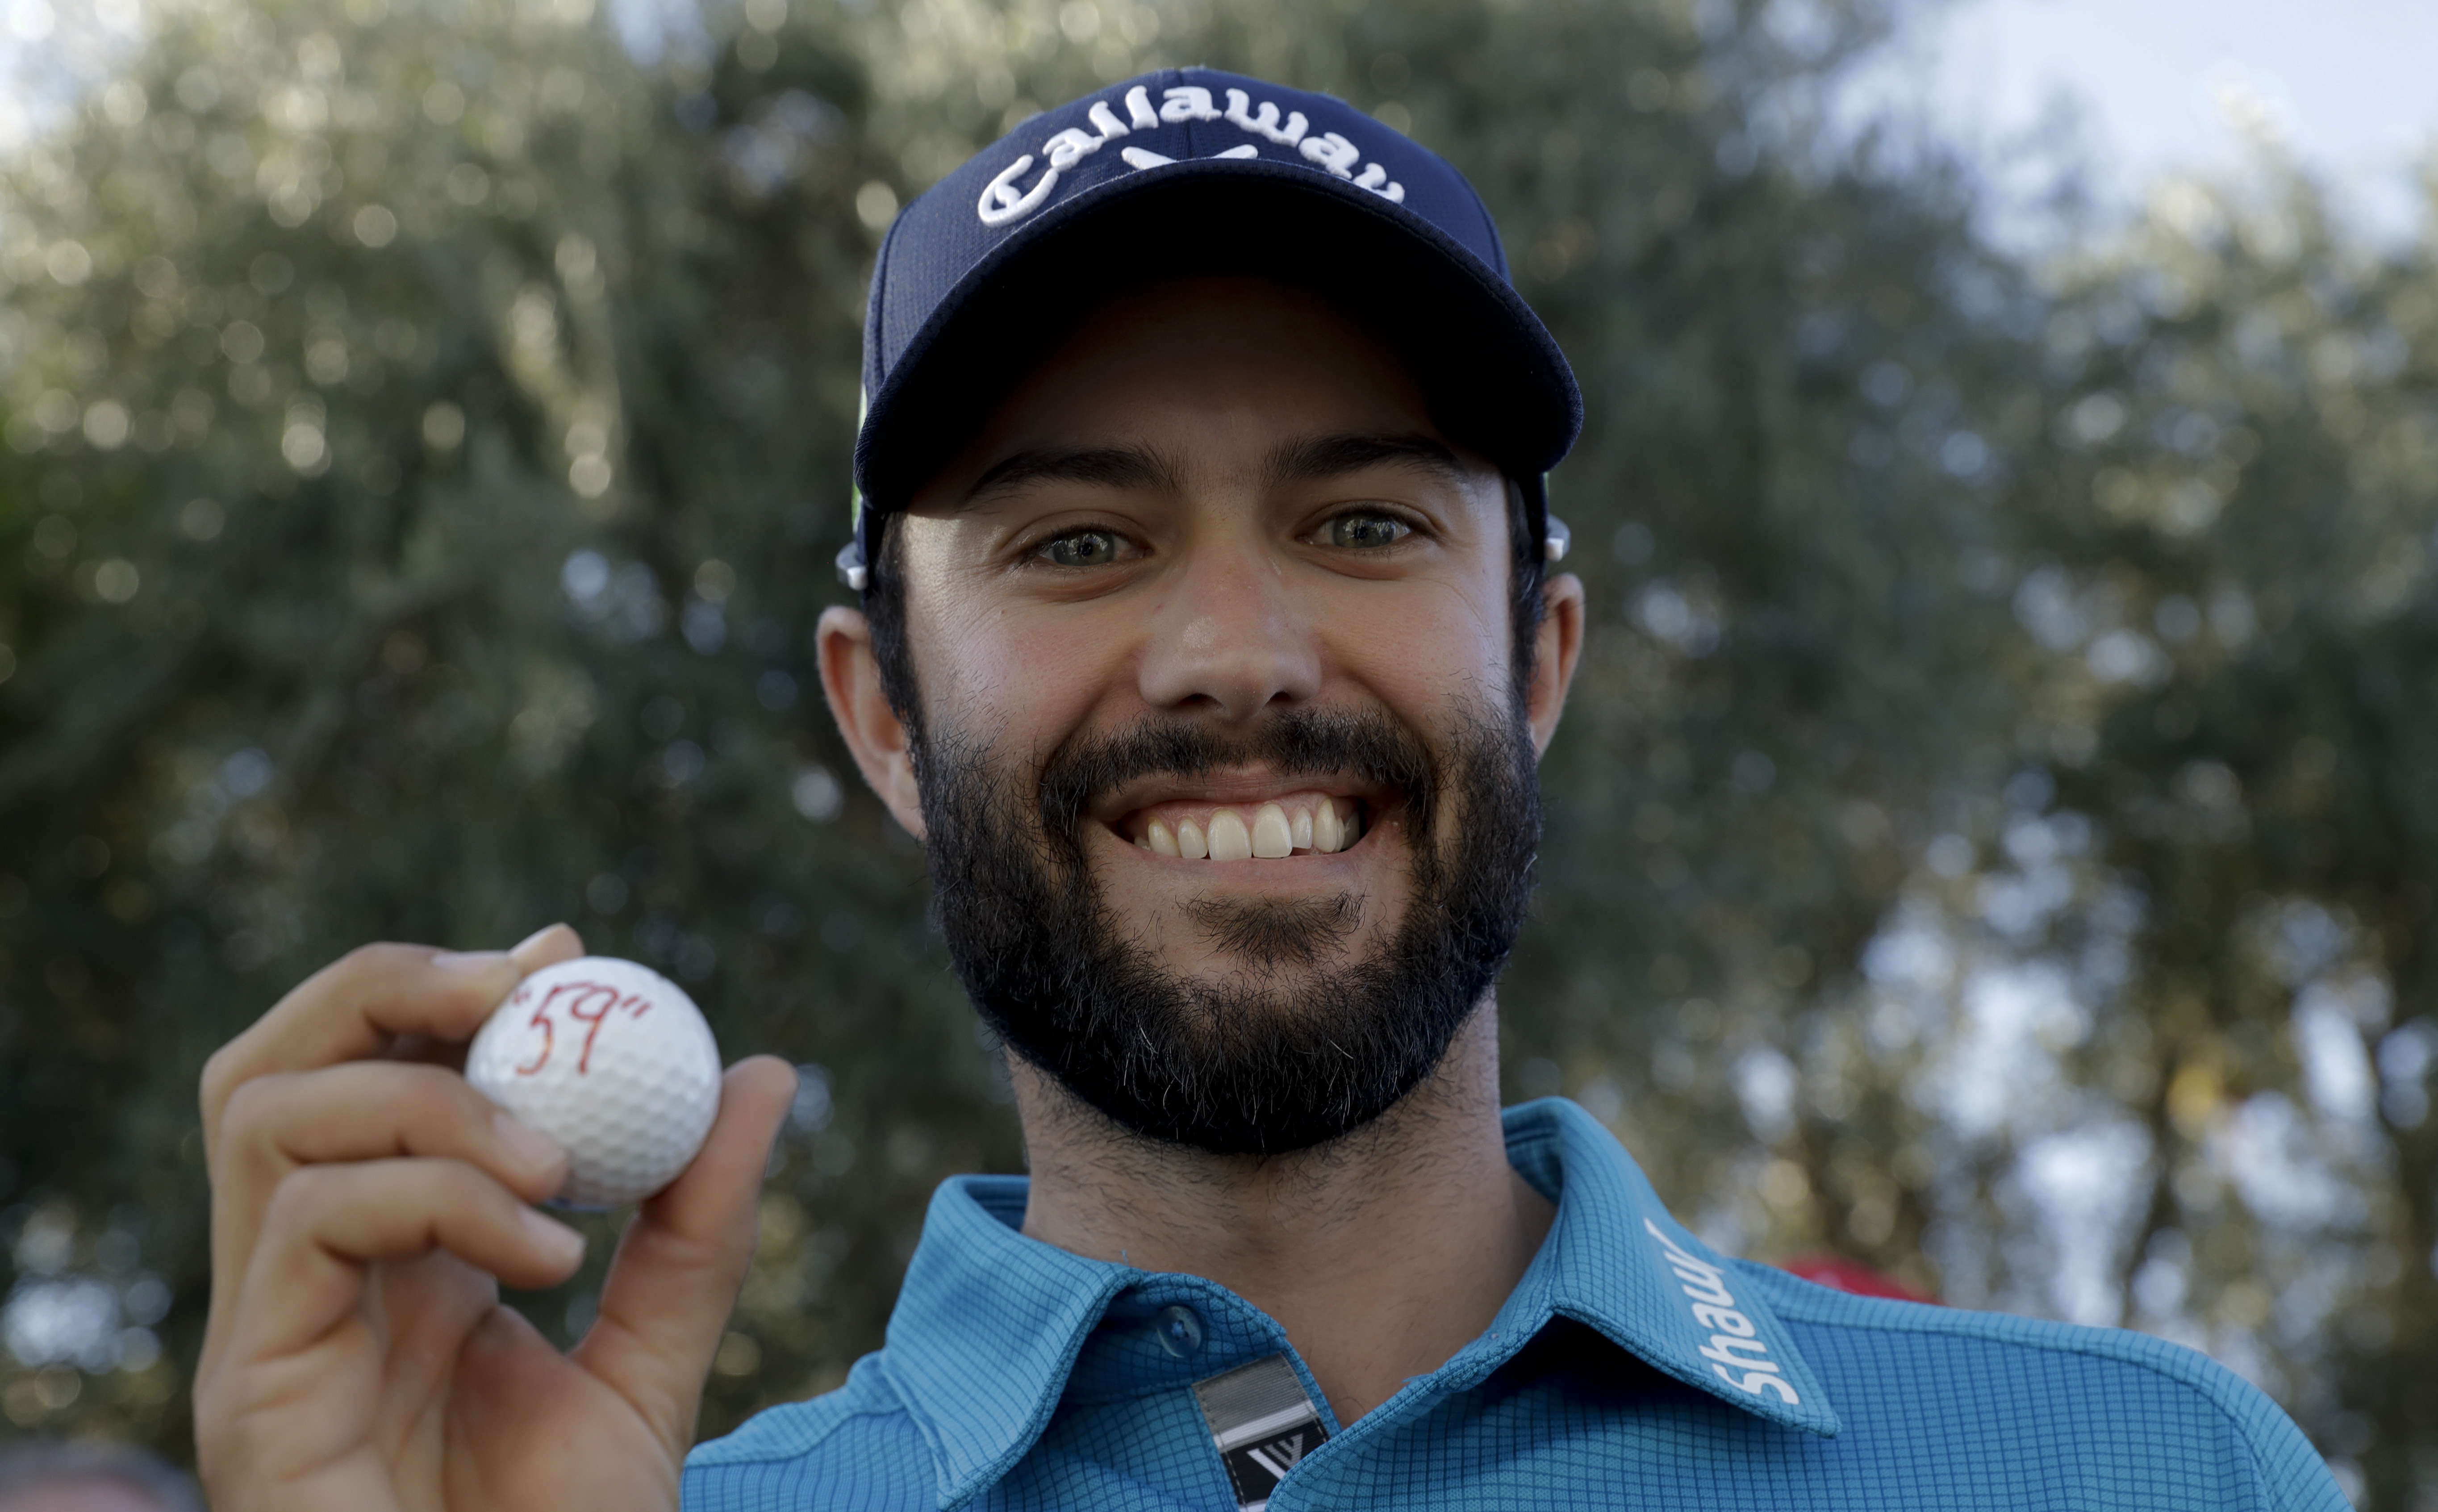 Adam Hadwin celebrates poses after shooting a 59 to take the third round lead in the CareerBuilder Challenge golf tournament at La Quinta Country Club Saturday, Jan. 21, 2017, in La Quinta, Calif. (AP Photo/Chris Carlson)